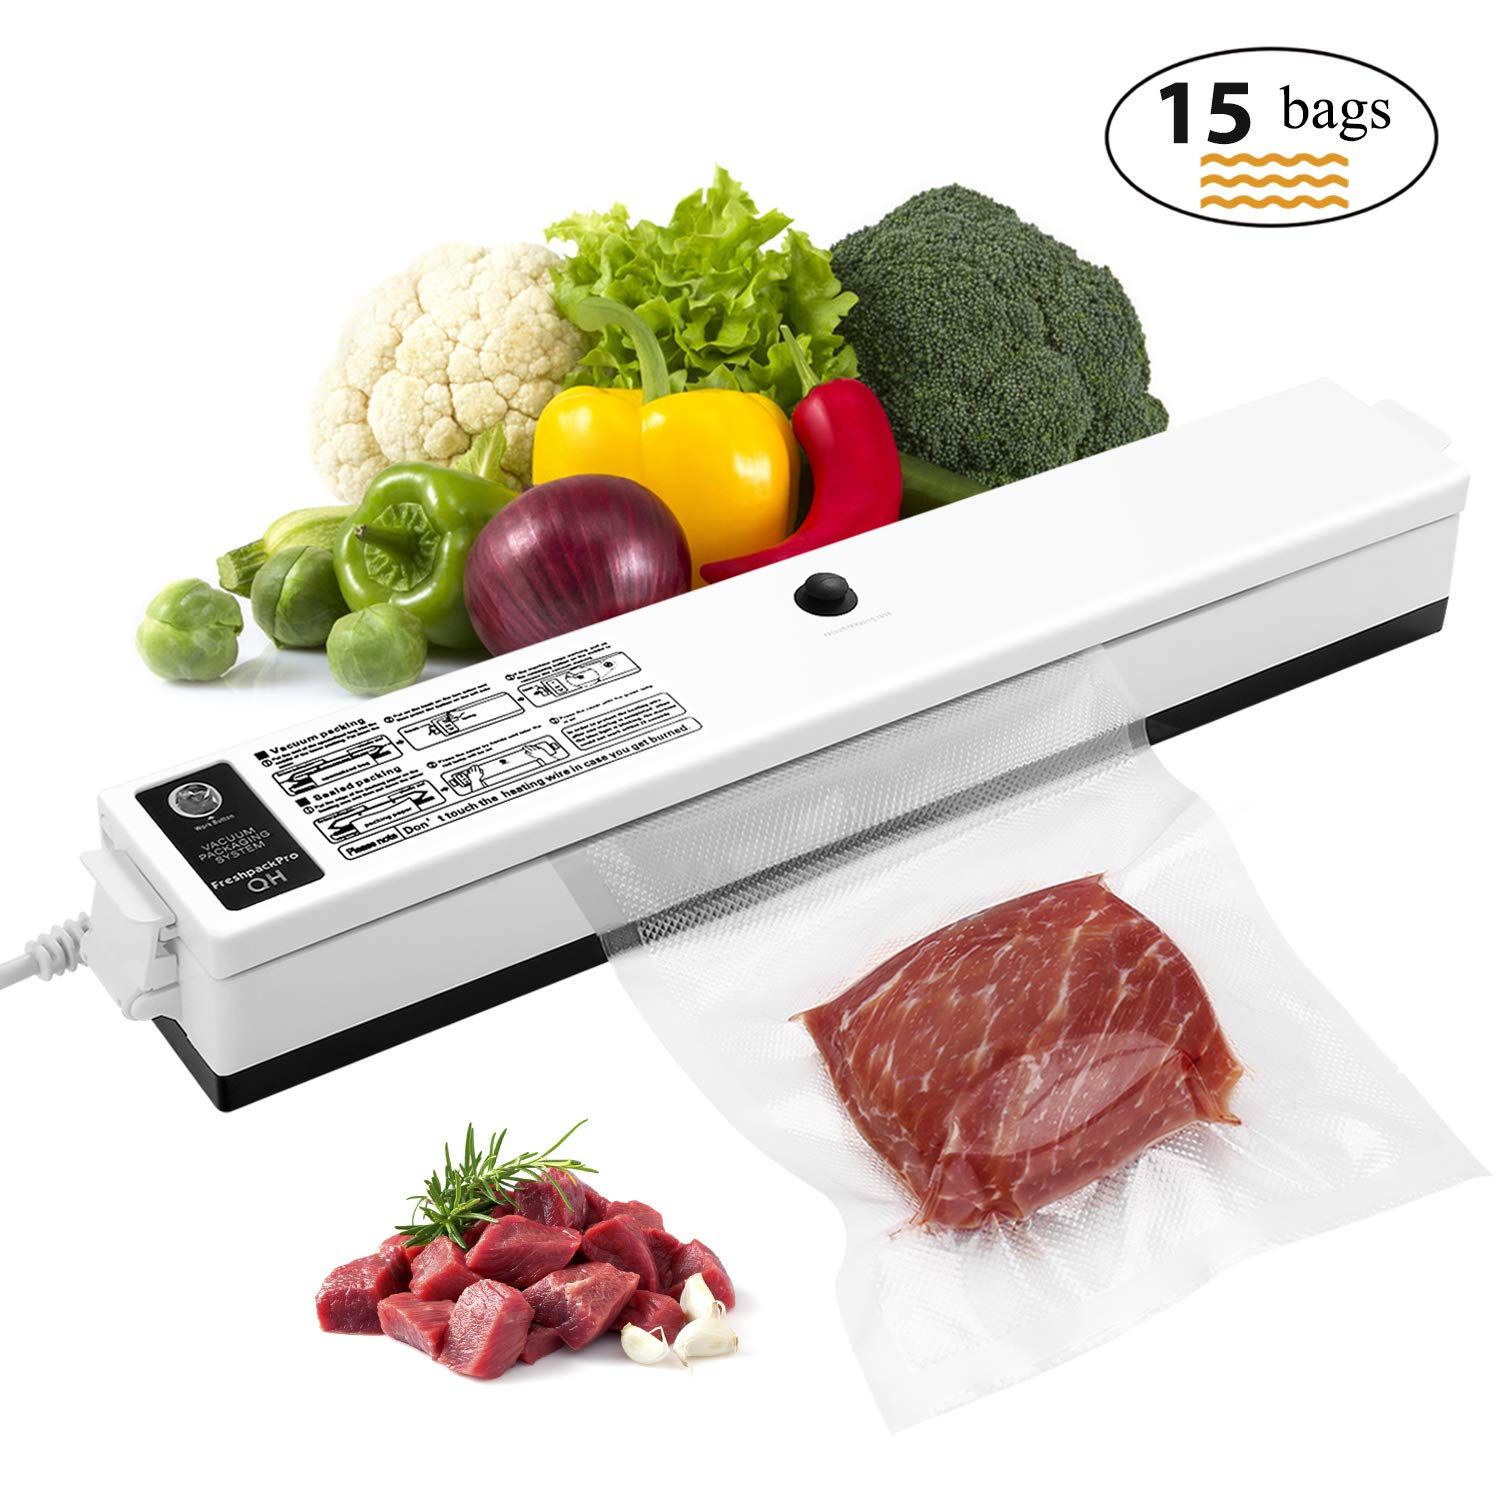 Vacuum Sealer, Etrigger Automatic Vacuum Sealing Machine for Both Dried and Wet Fresh Food, Suitable for Camping and Home Use(Provide 15pcs Vacuum Sealer Bags of 20 × 25cm) 71e39AUmvaL